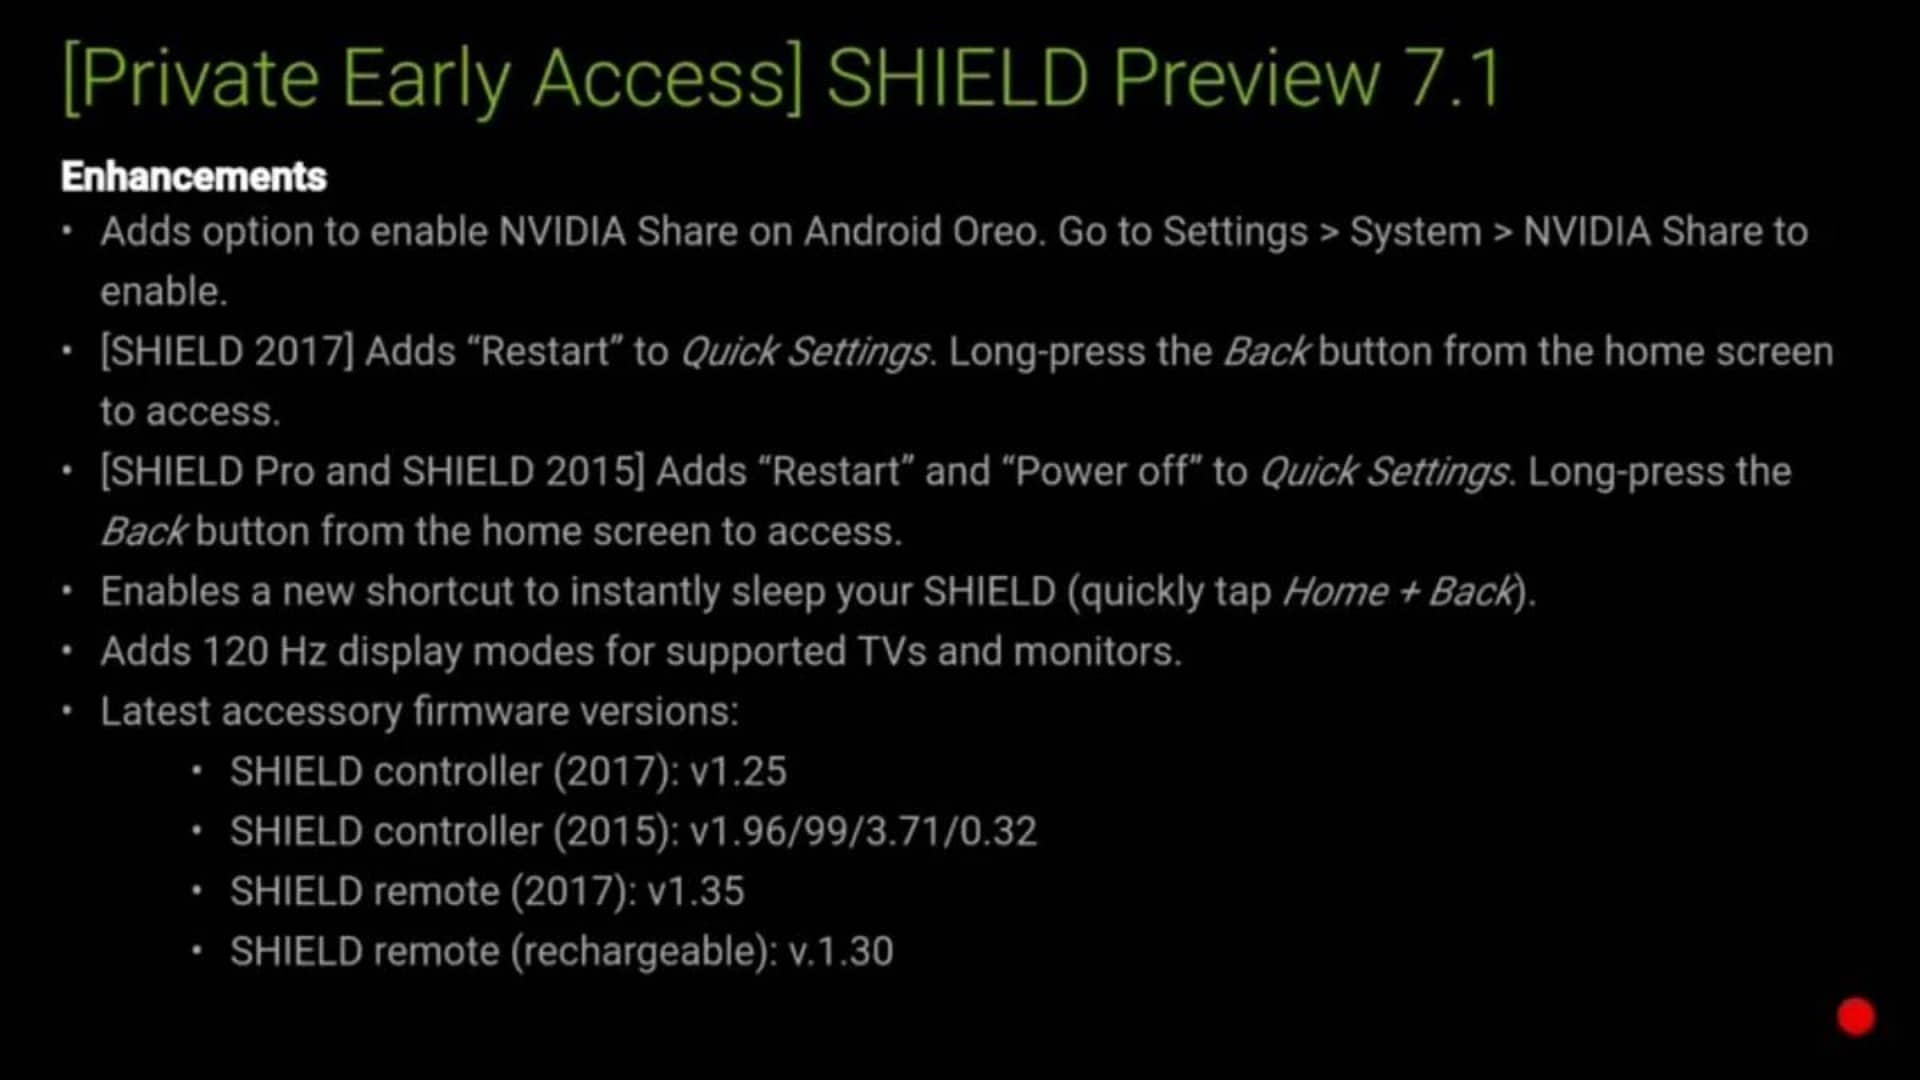 NVIDIA SHIELD UPDATE 7.1 img 02 from XDA Developers